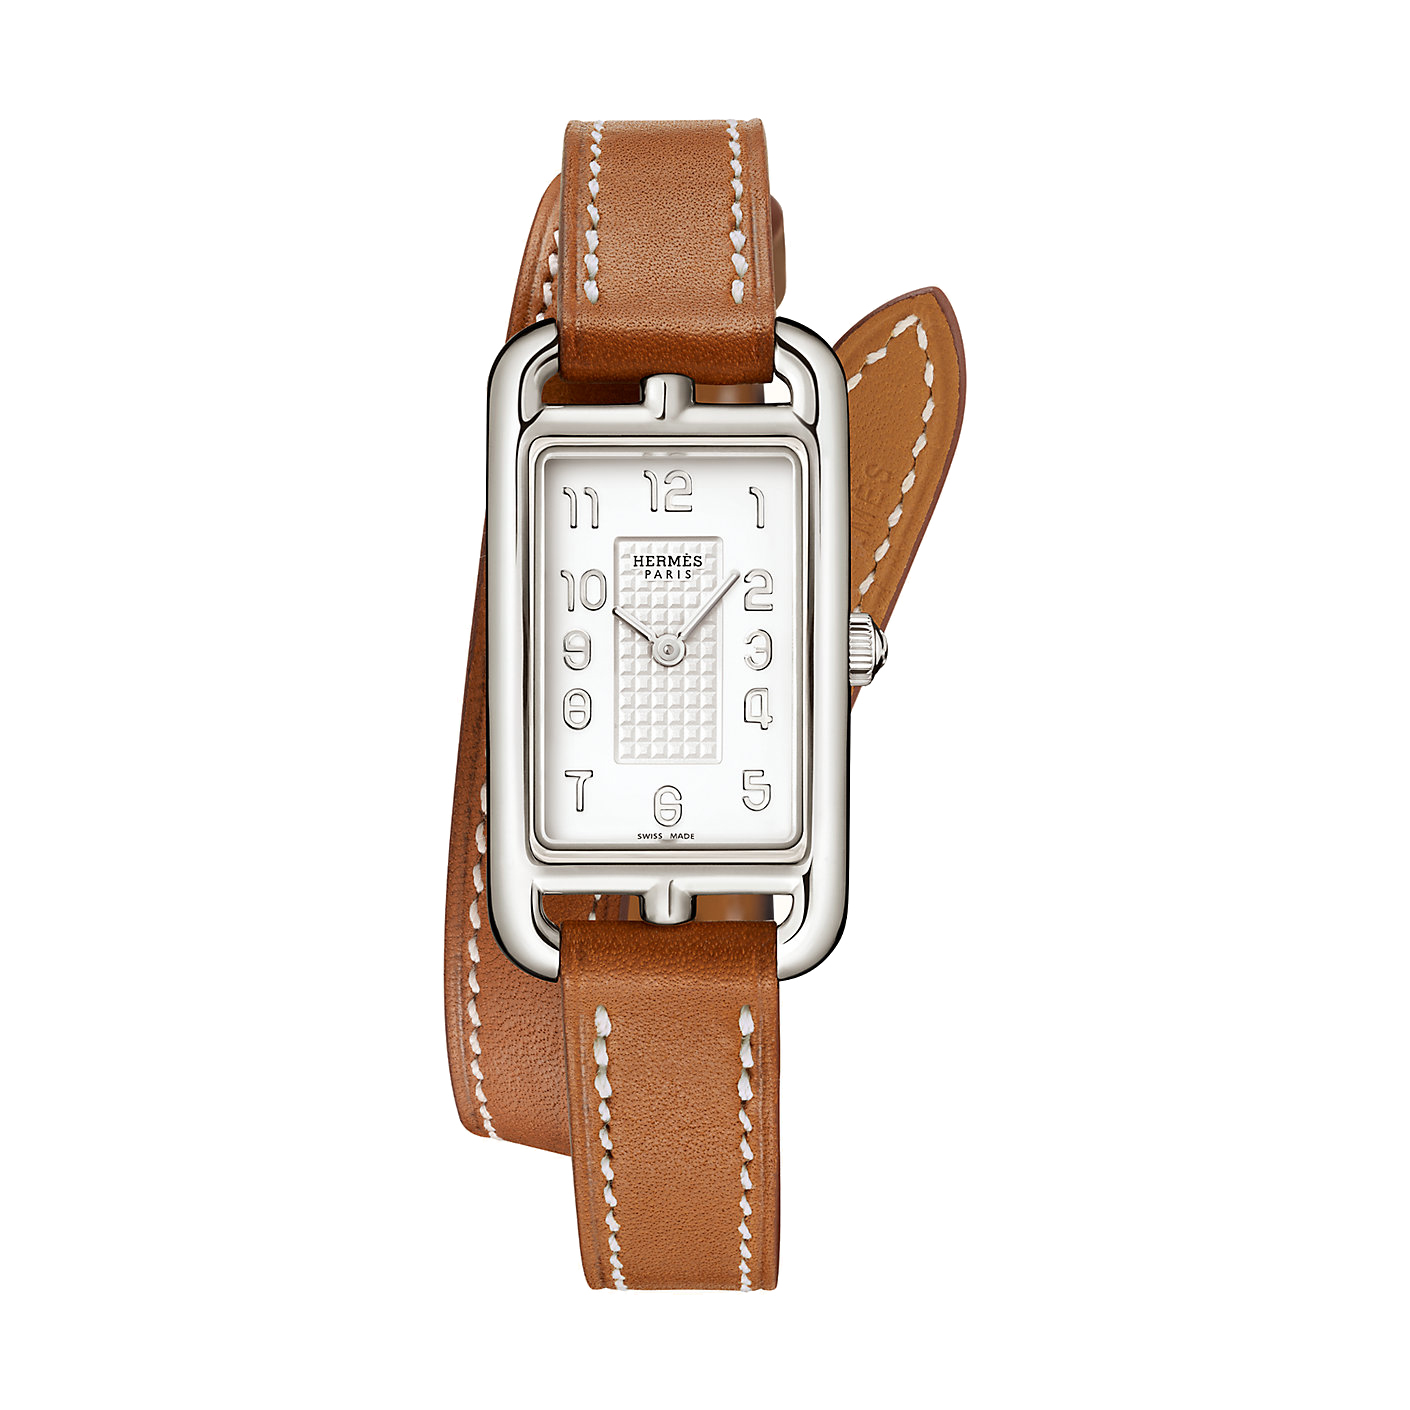 Hermès-nantucket-20-x-27mm-Hall-of-Time-042703WW00